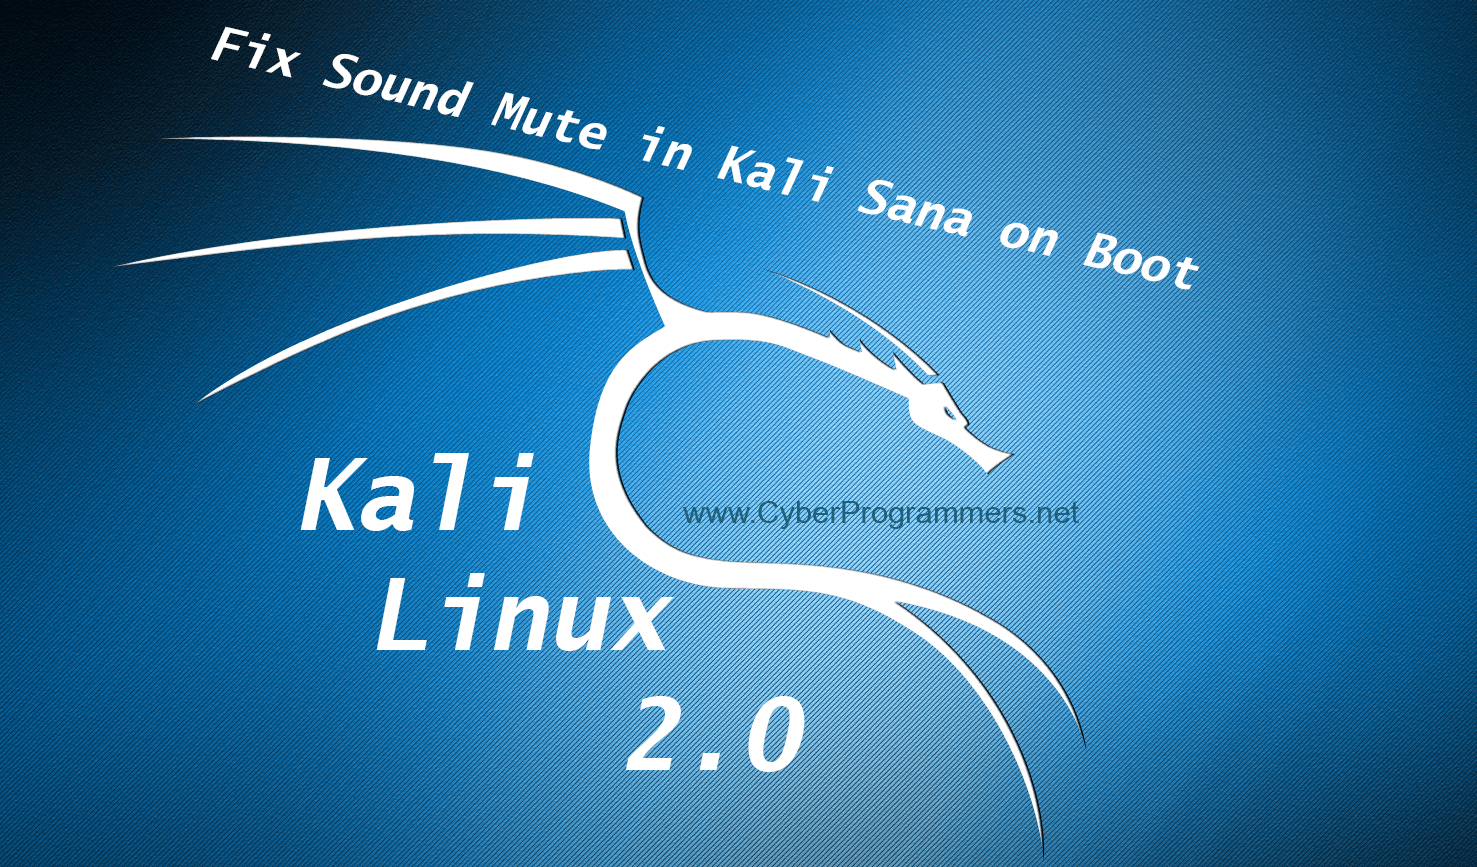 How to Fix Sound/Audio Driver Mute in Kali Linux 2/Kali Sana